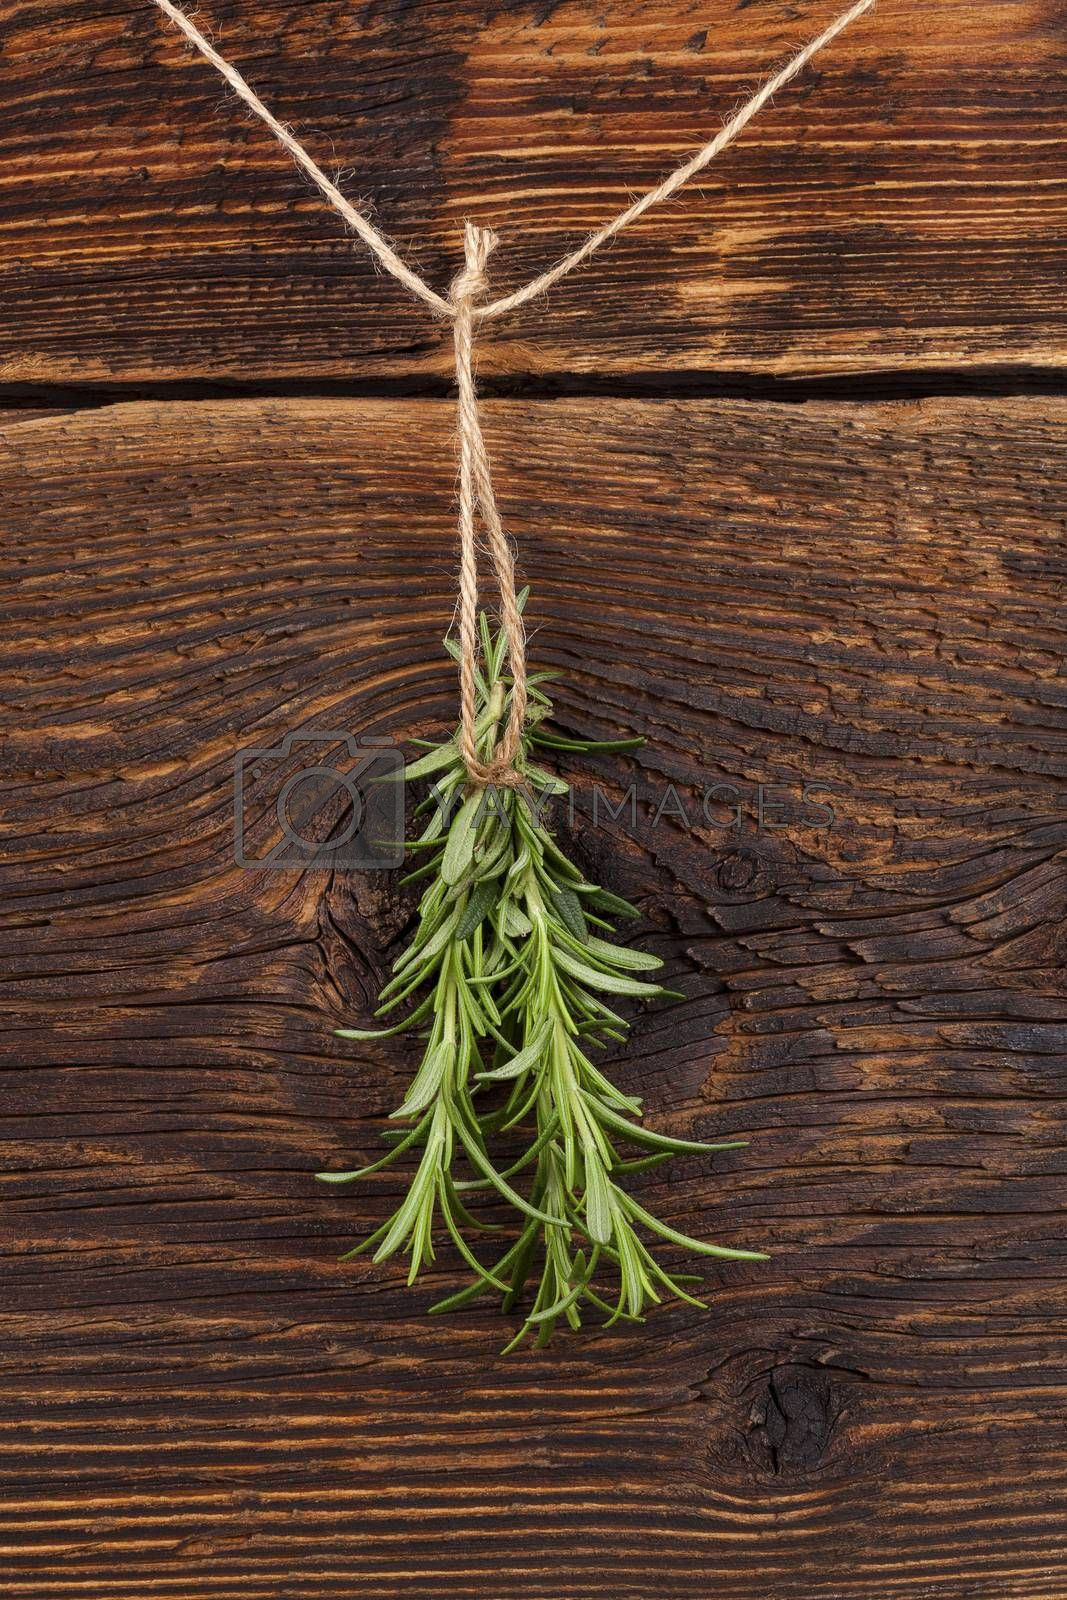 Rosemary herb hanging and drying on rustic wooden background. Culinary aromatic herbs.